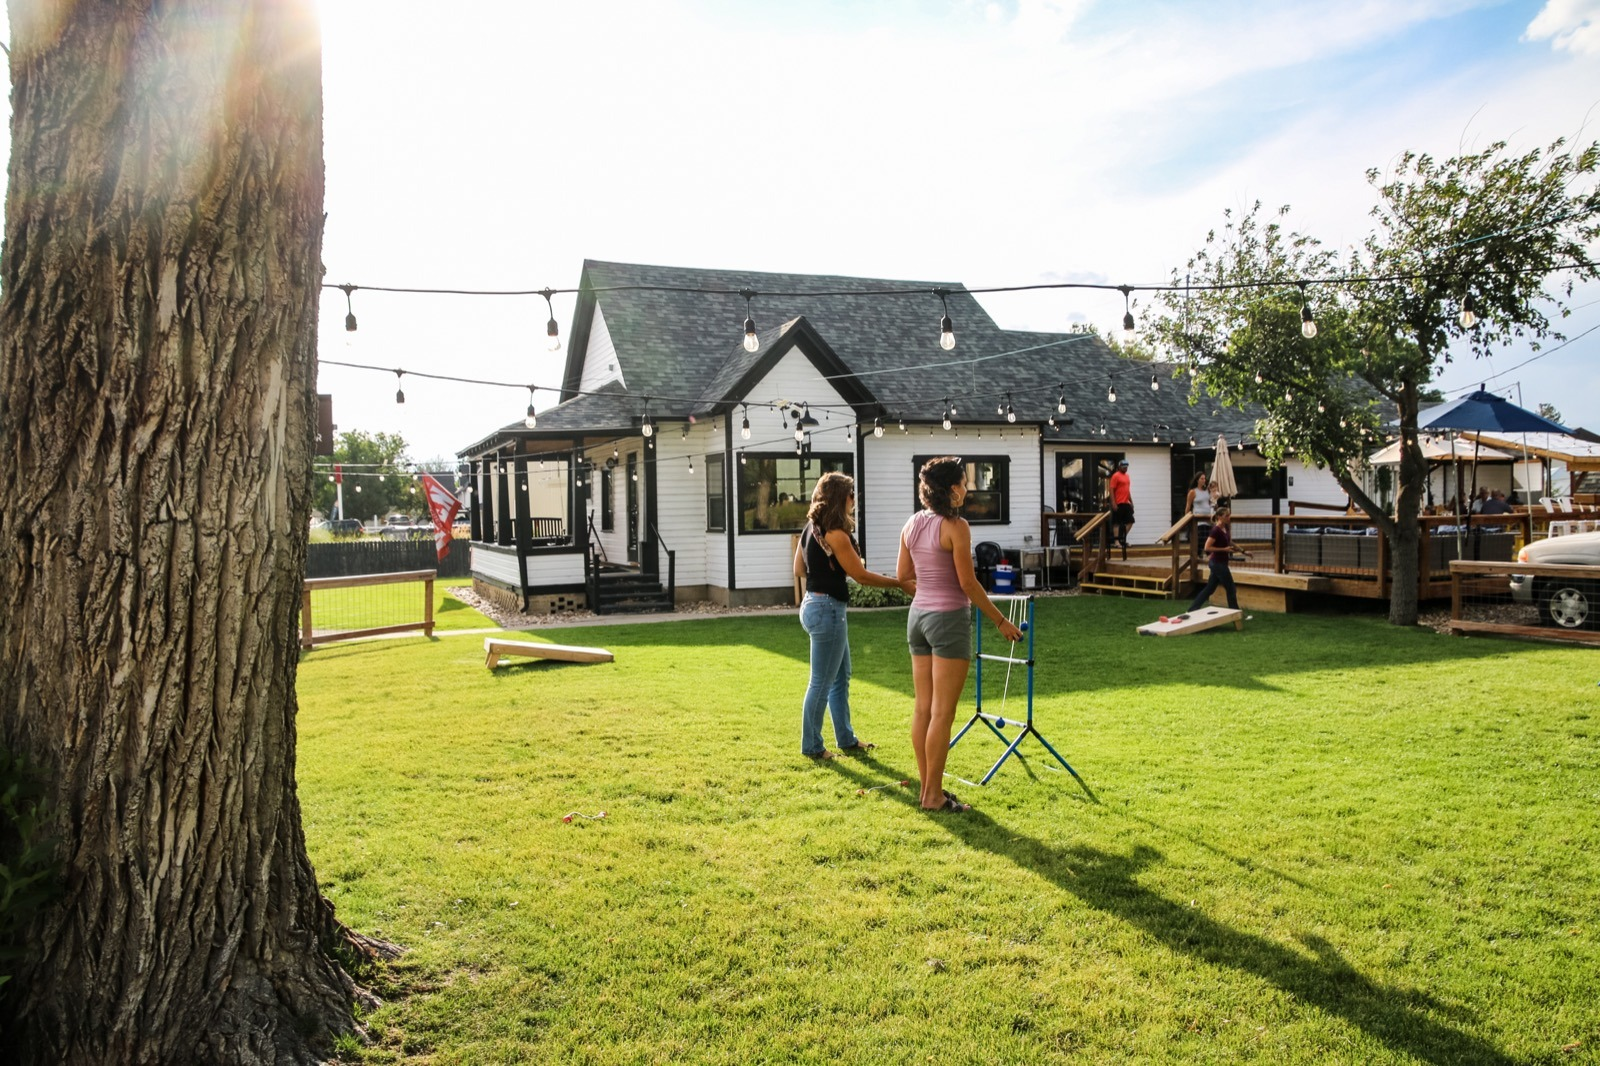 Firewater Public House is a great escape from reality, especially with yard games!